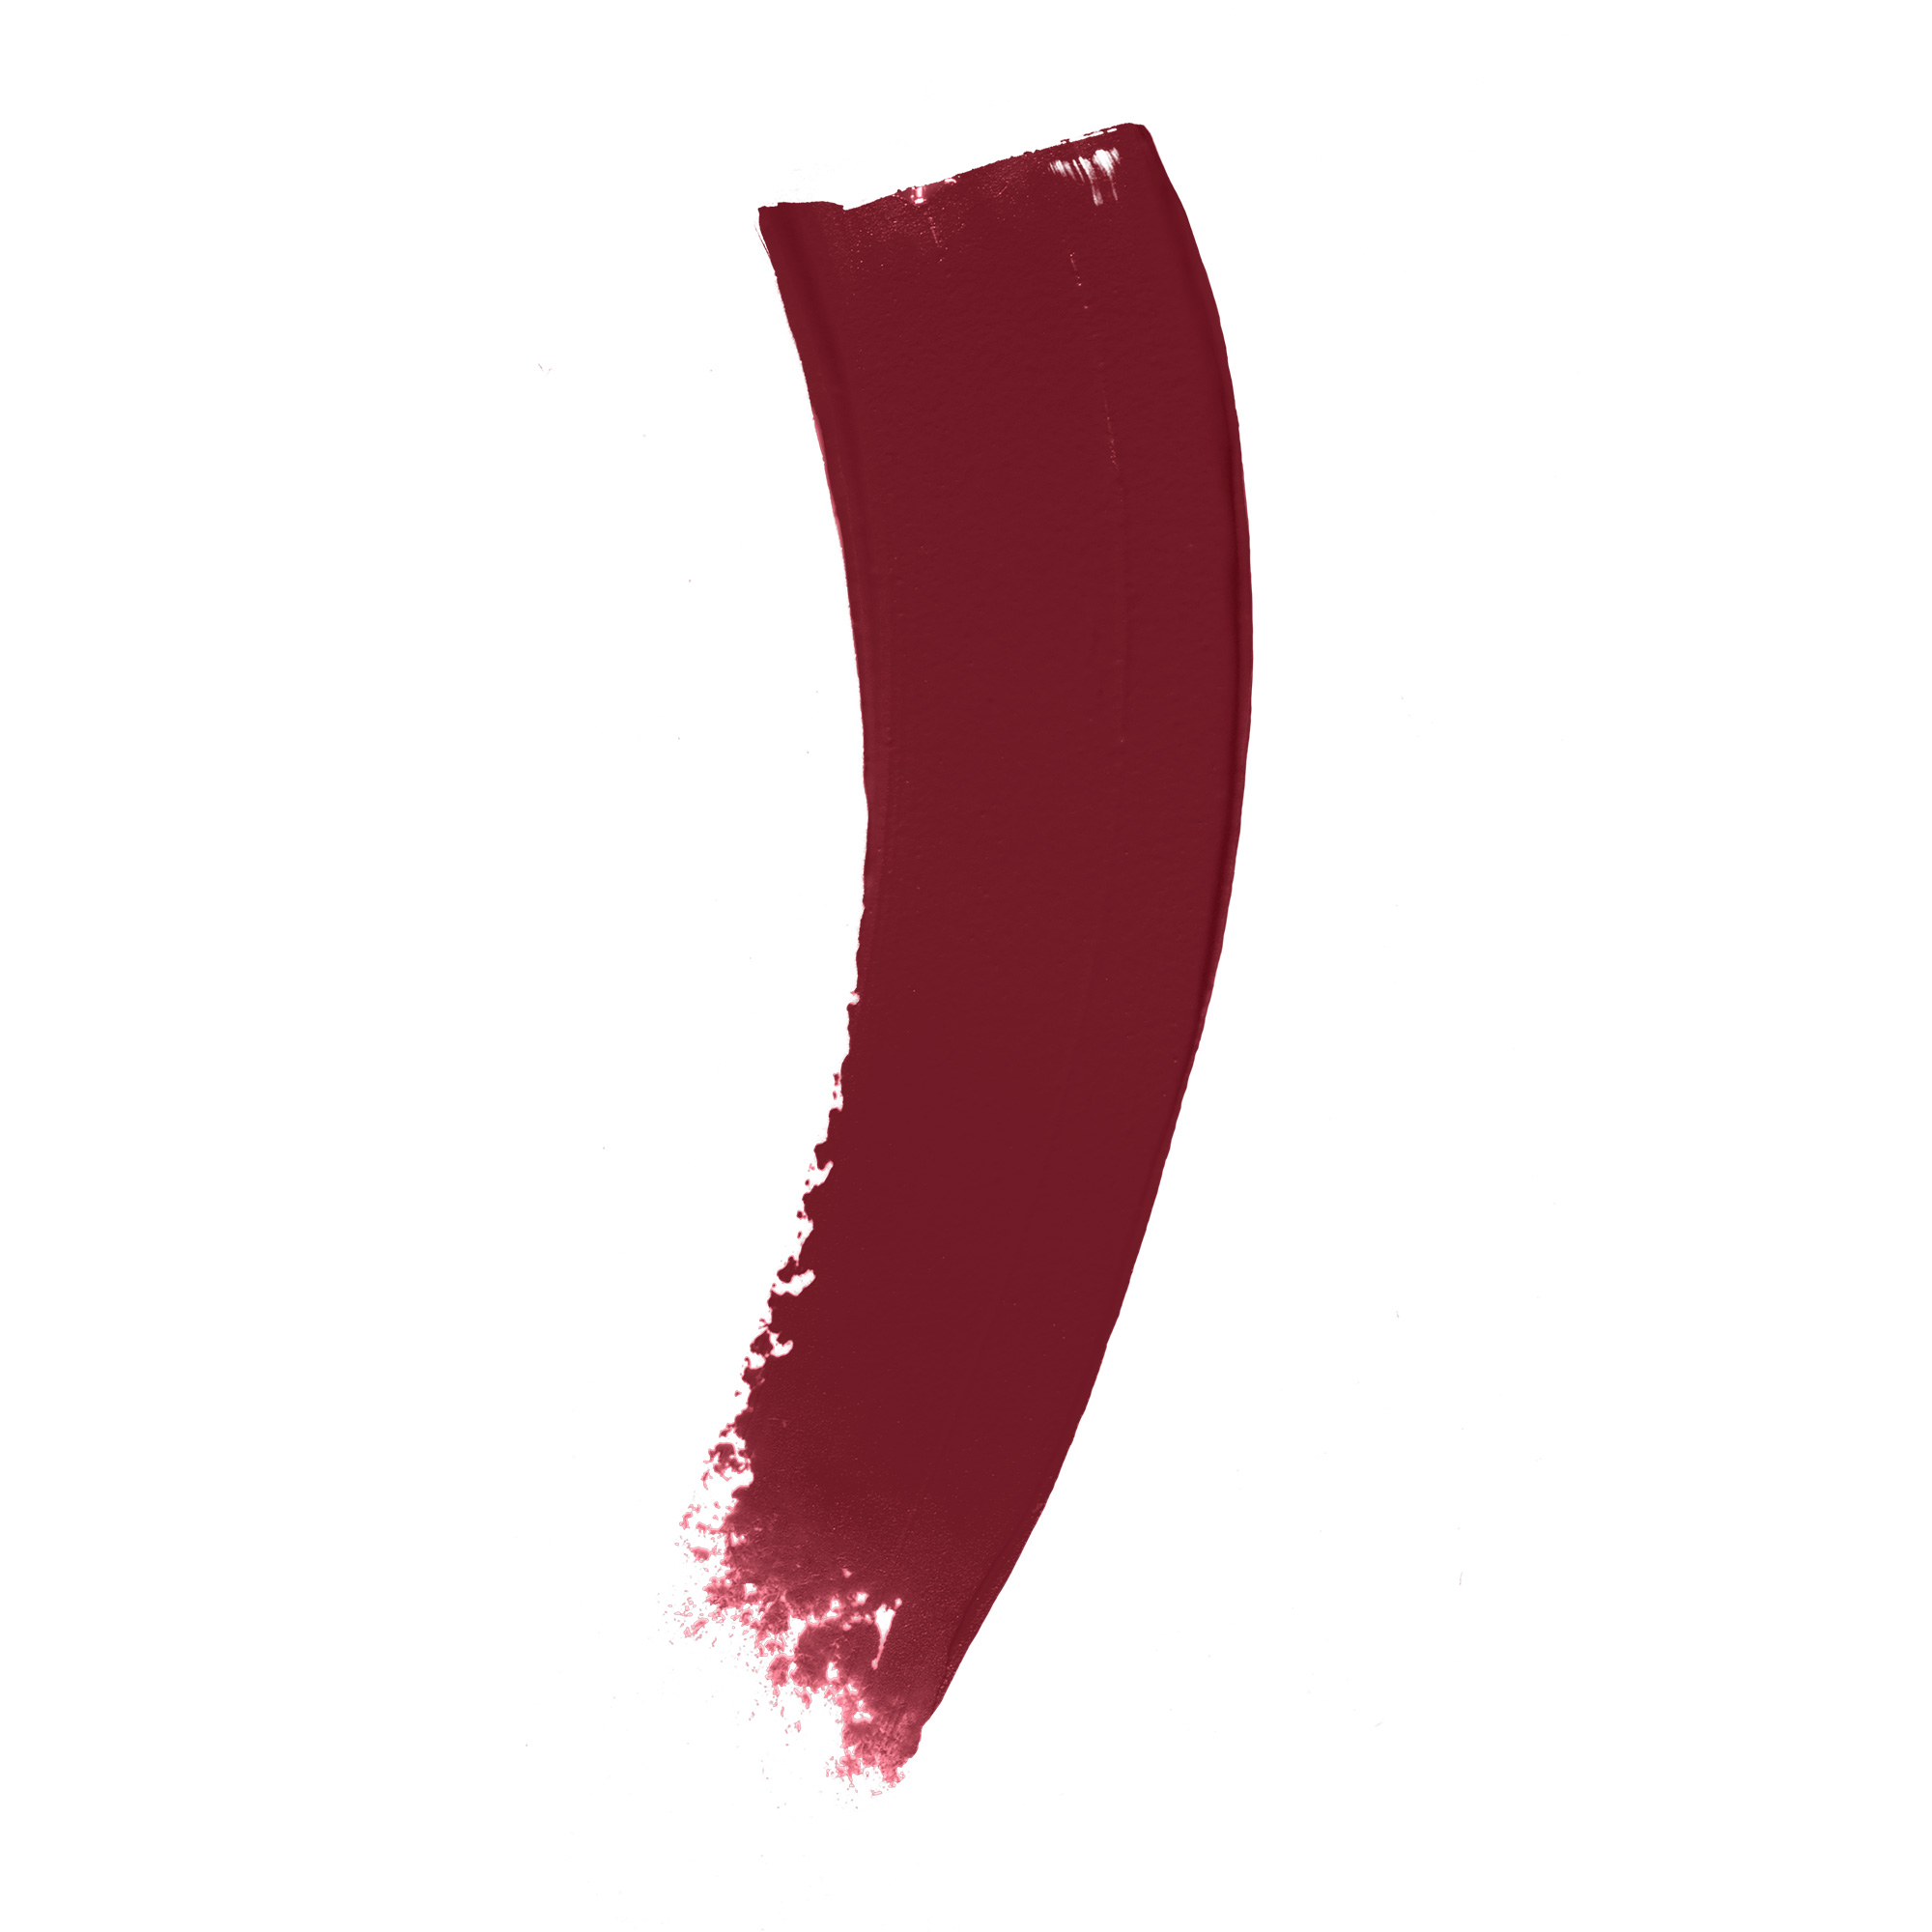 Matte Finish - Stacked - Deep Wine